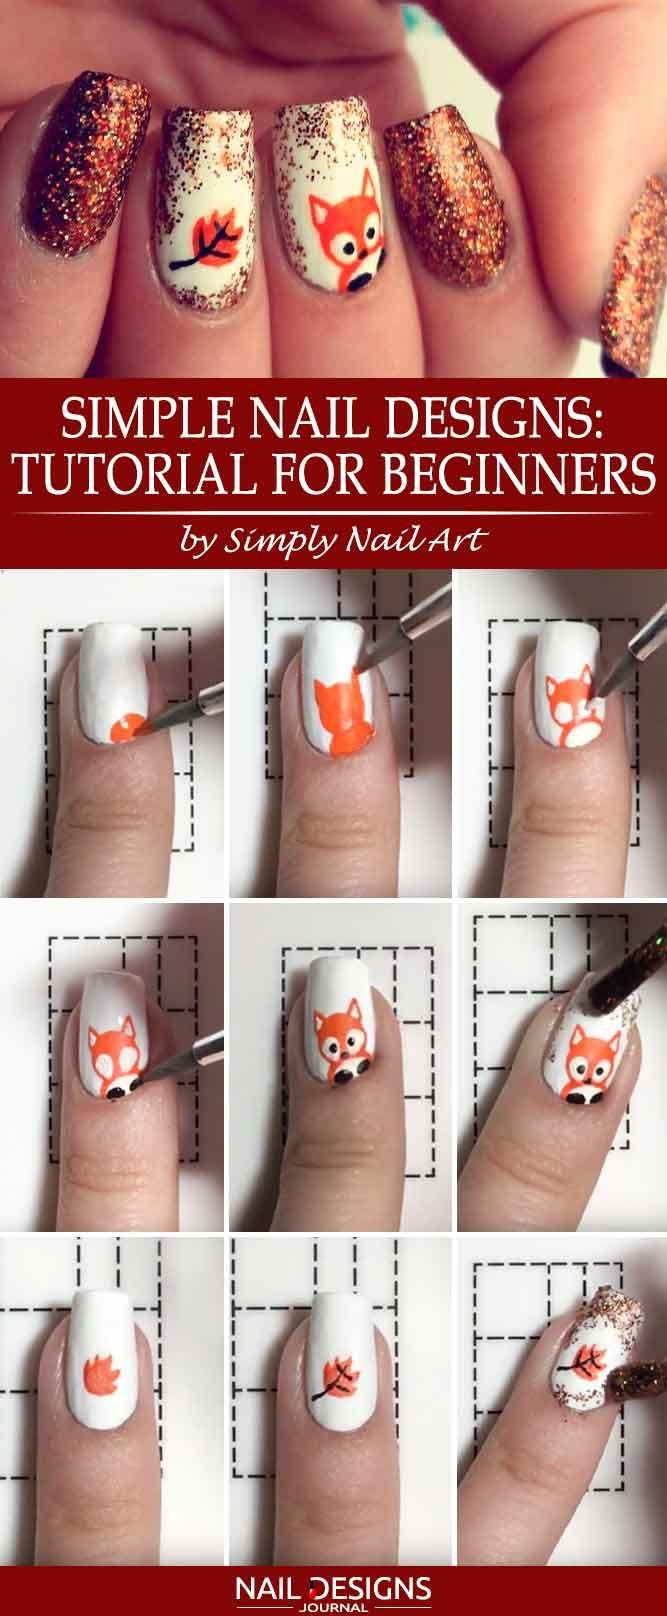 Foxy Nails: The Hottest Trend of This Fall ★ See more: https://naildesignsjournal.com/foxy-nails-tutorials-trendy-art/ #nails